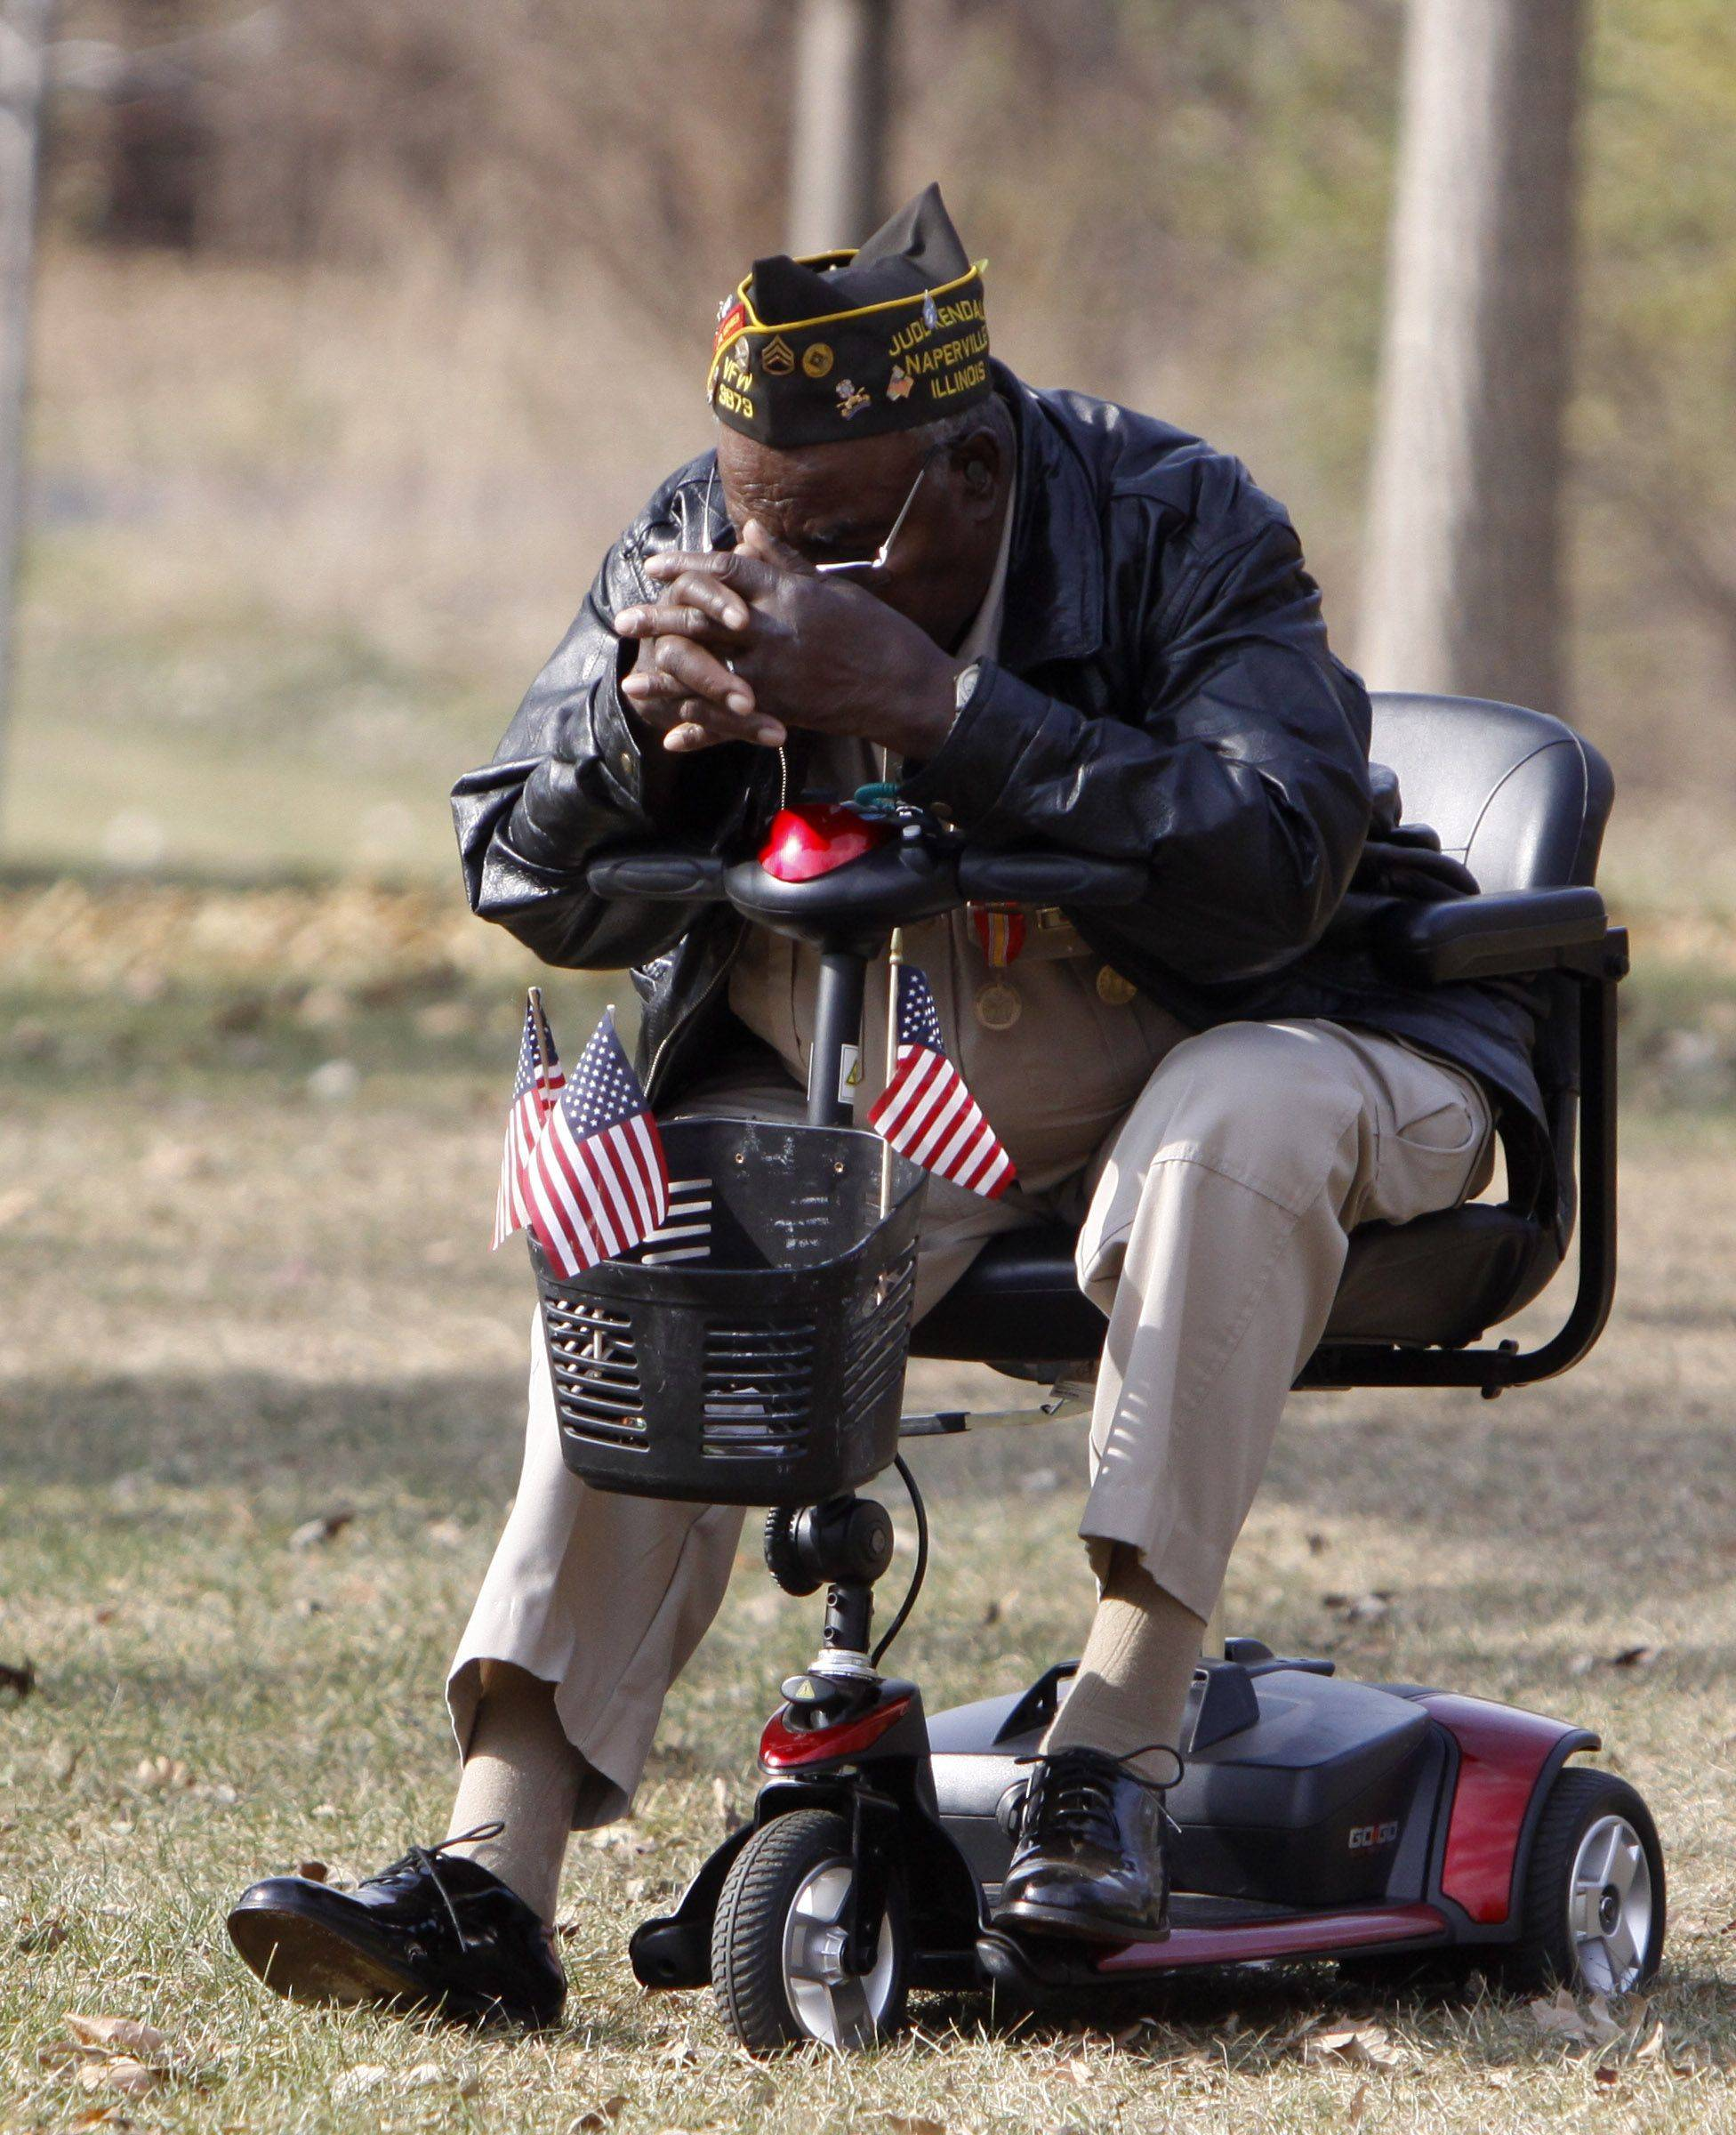 Naperville ceremony draws record crowd of veterans